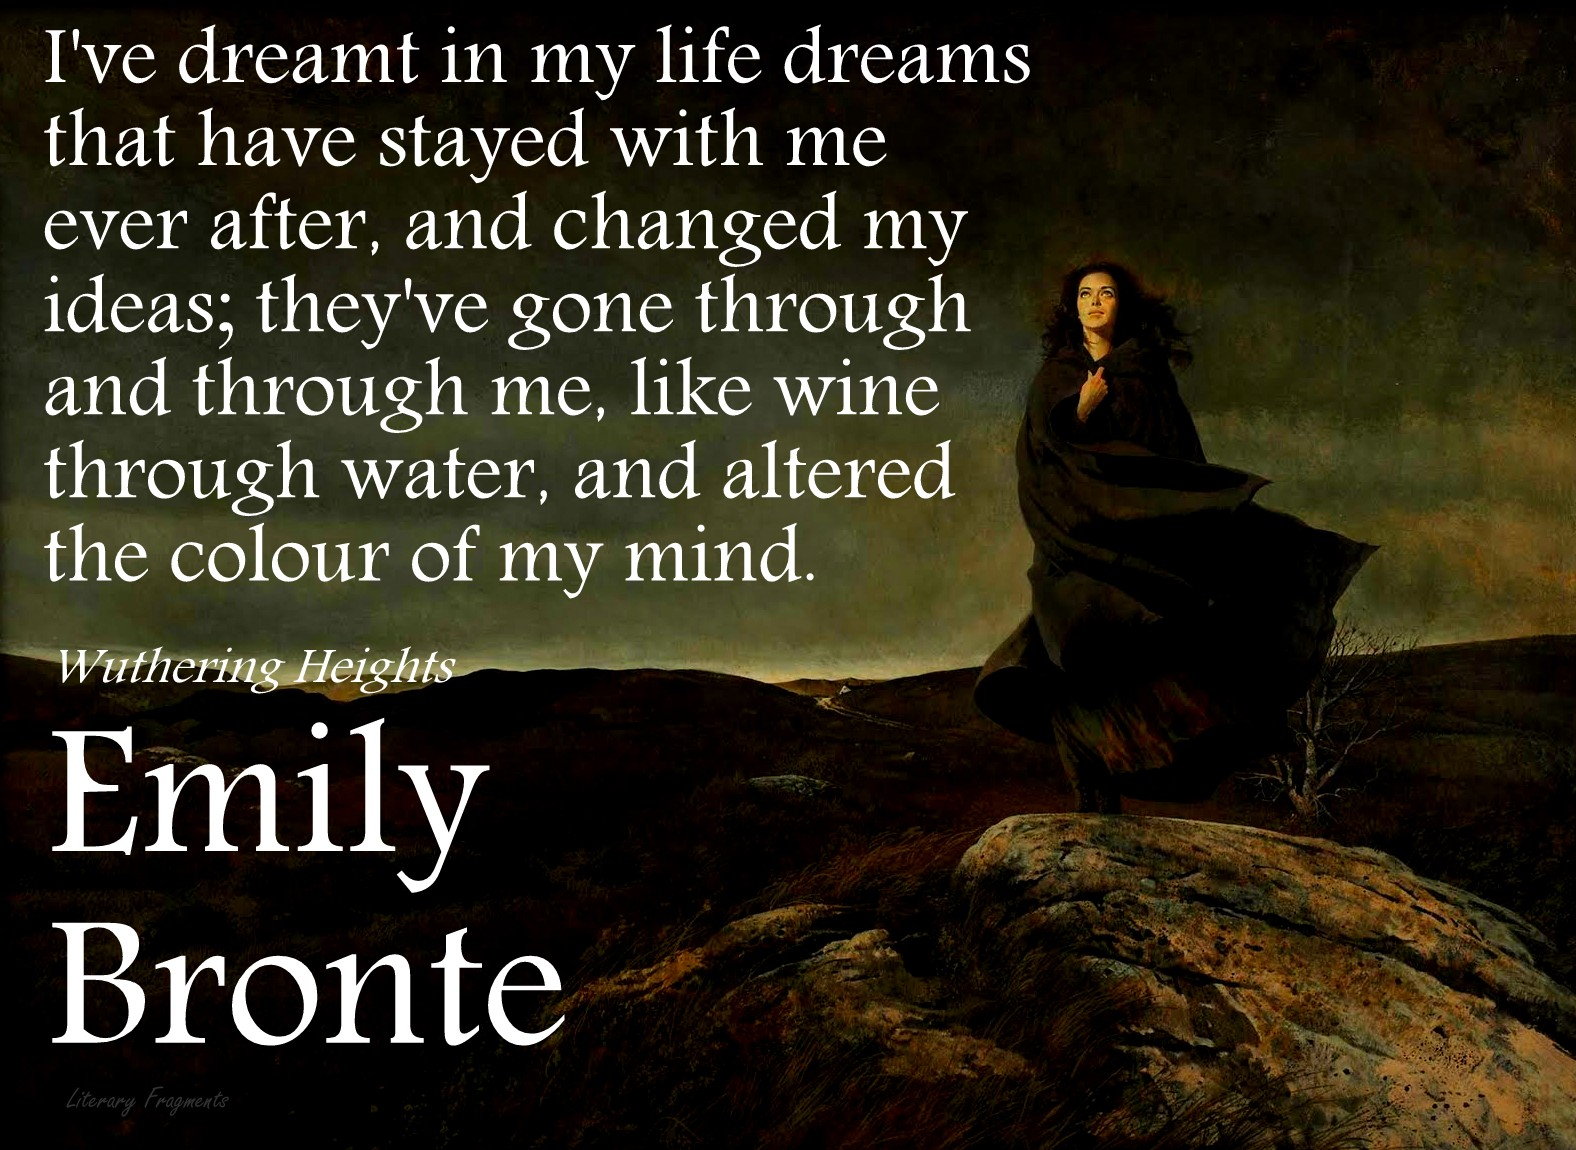 emily bront euml s wuthering heights book review by viktorija wuthering heights 6